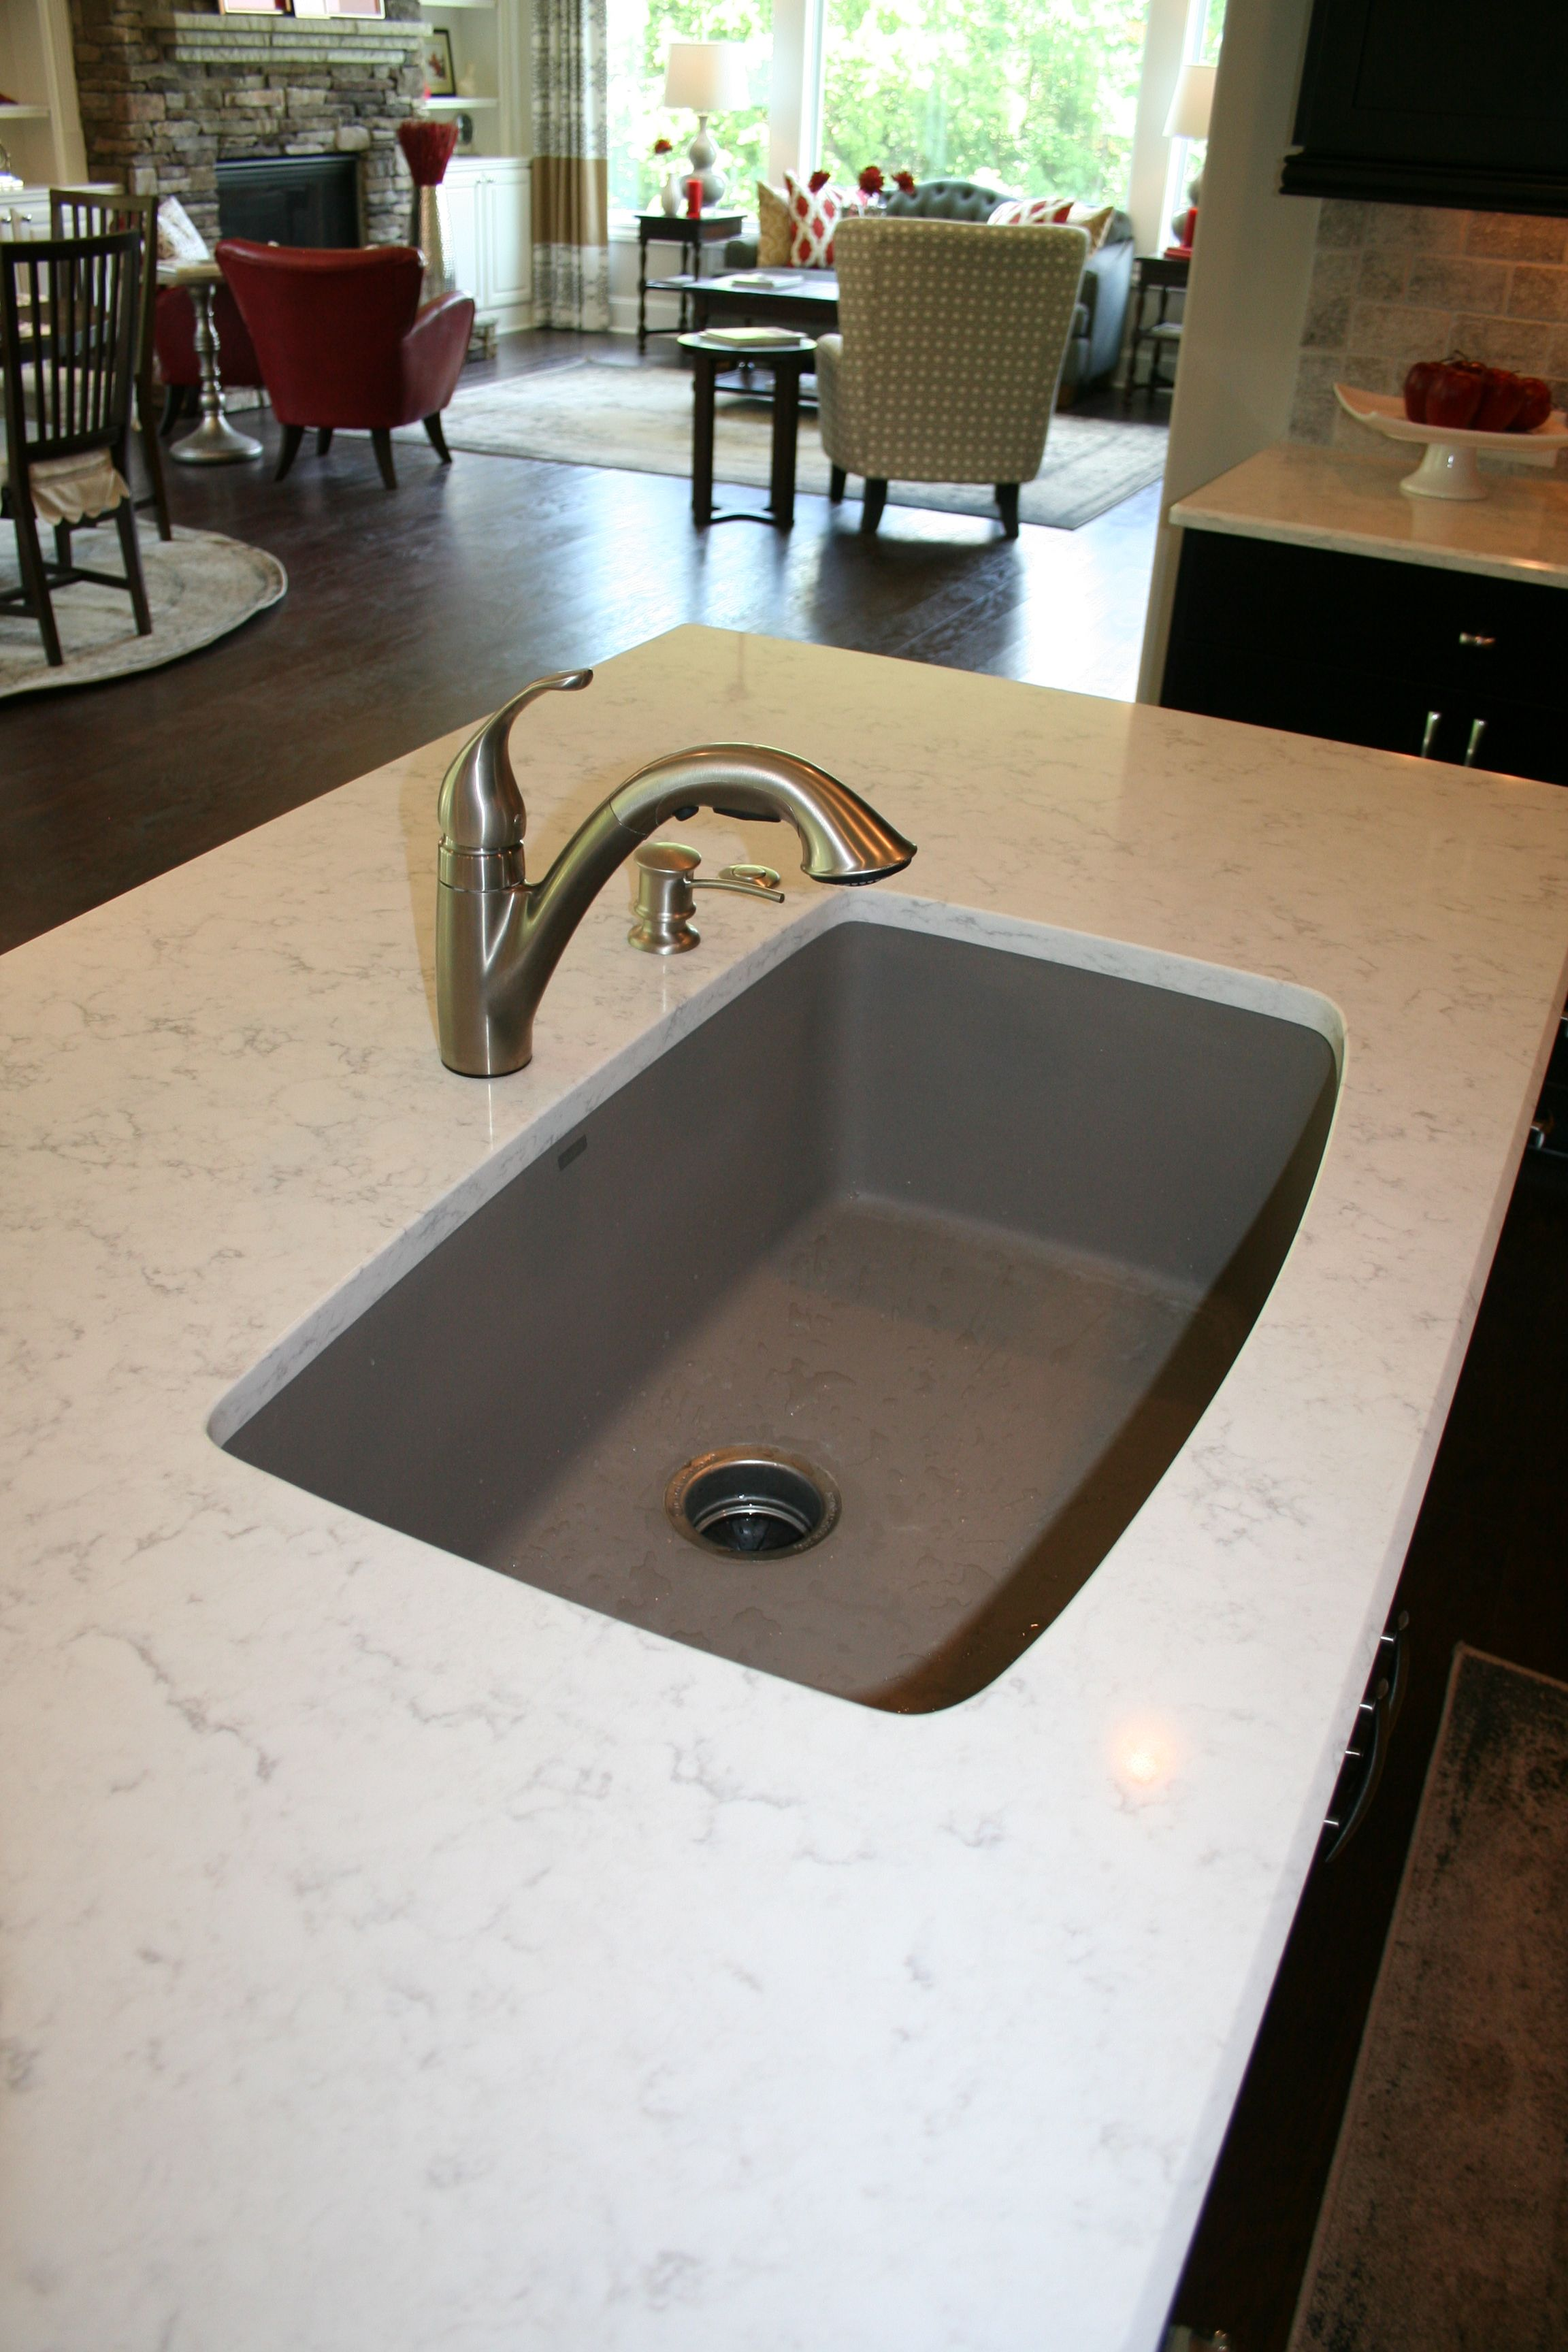 Quartz Countertop With Single Bowl Blanco Truffle Sink And Moen